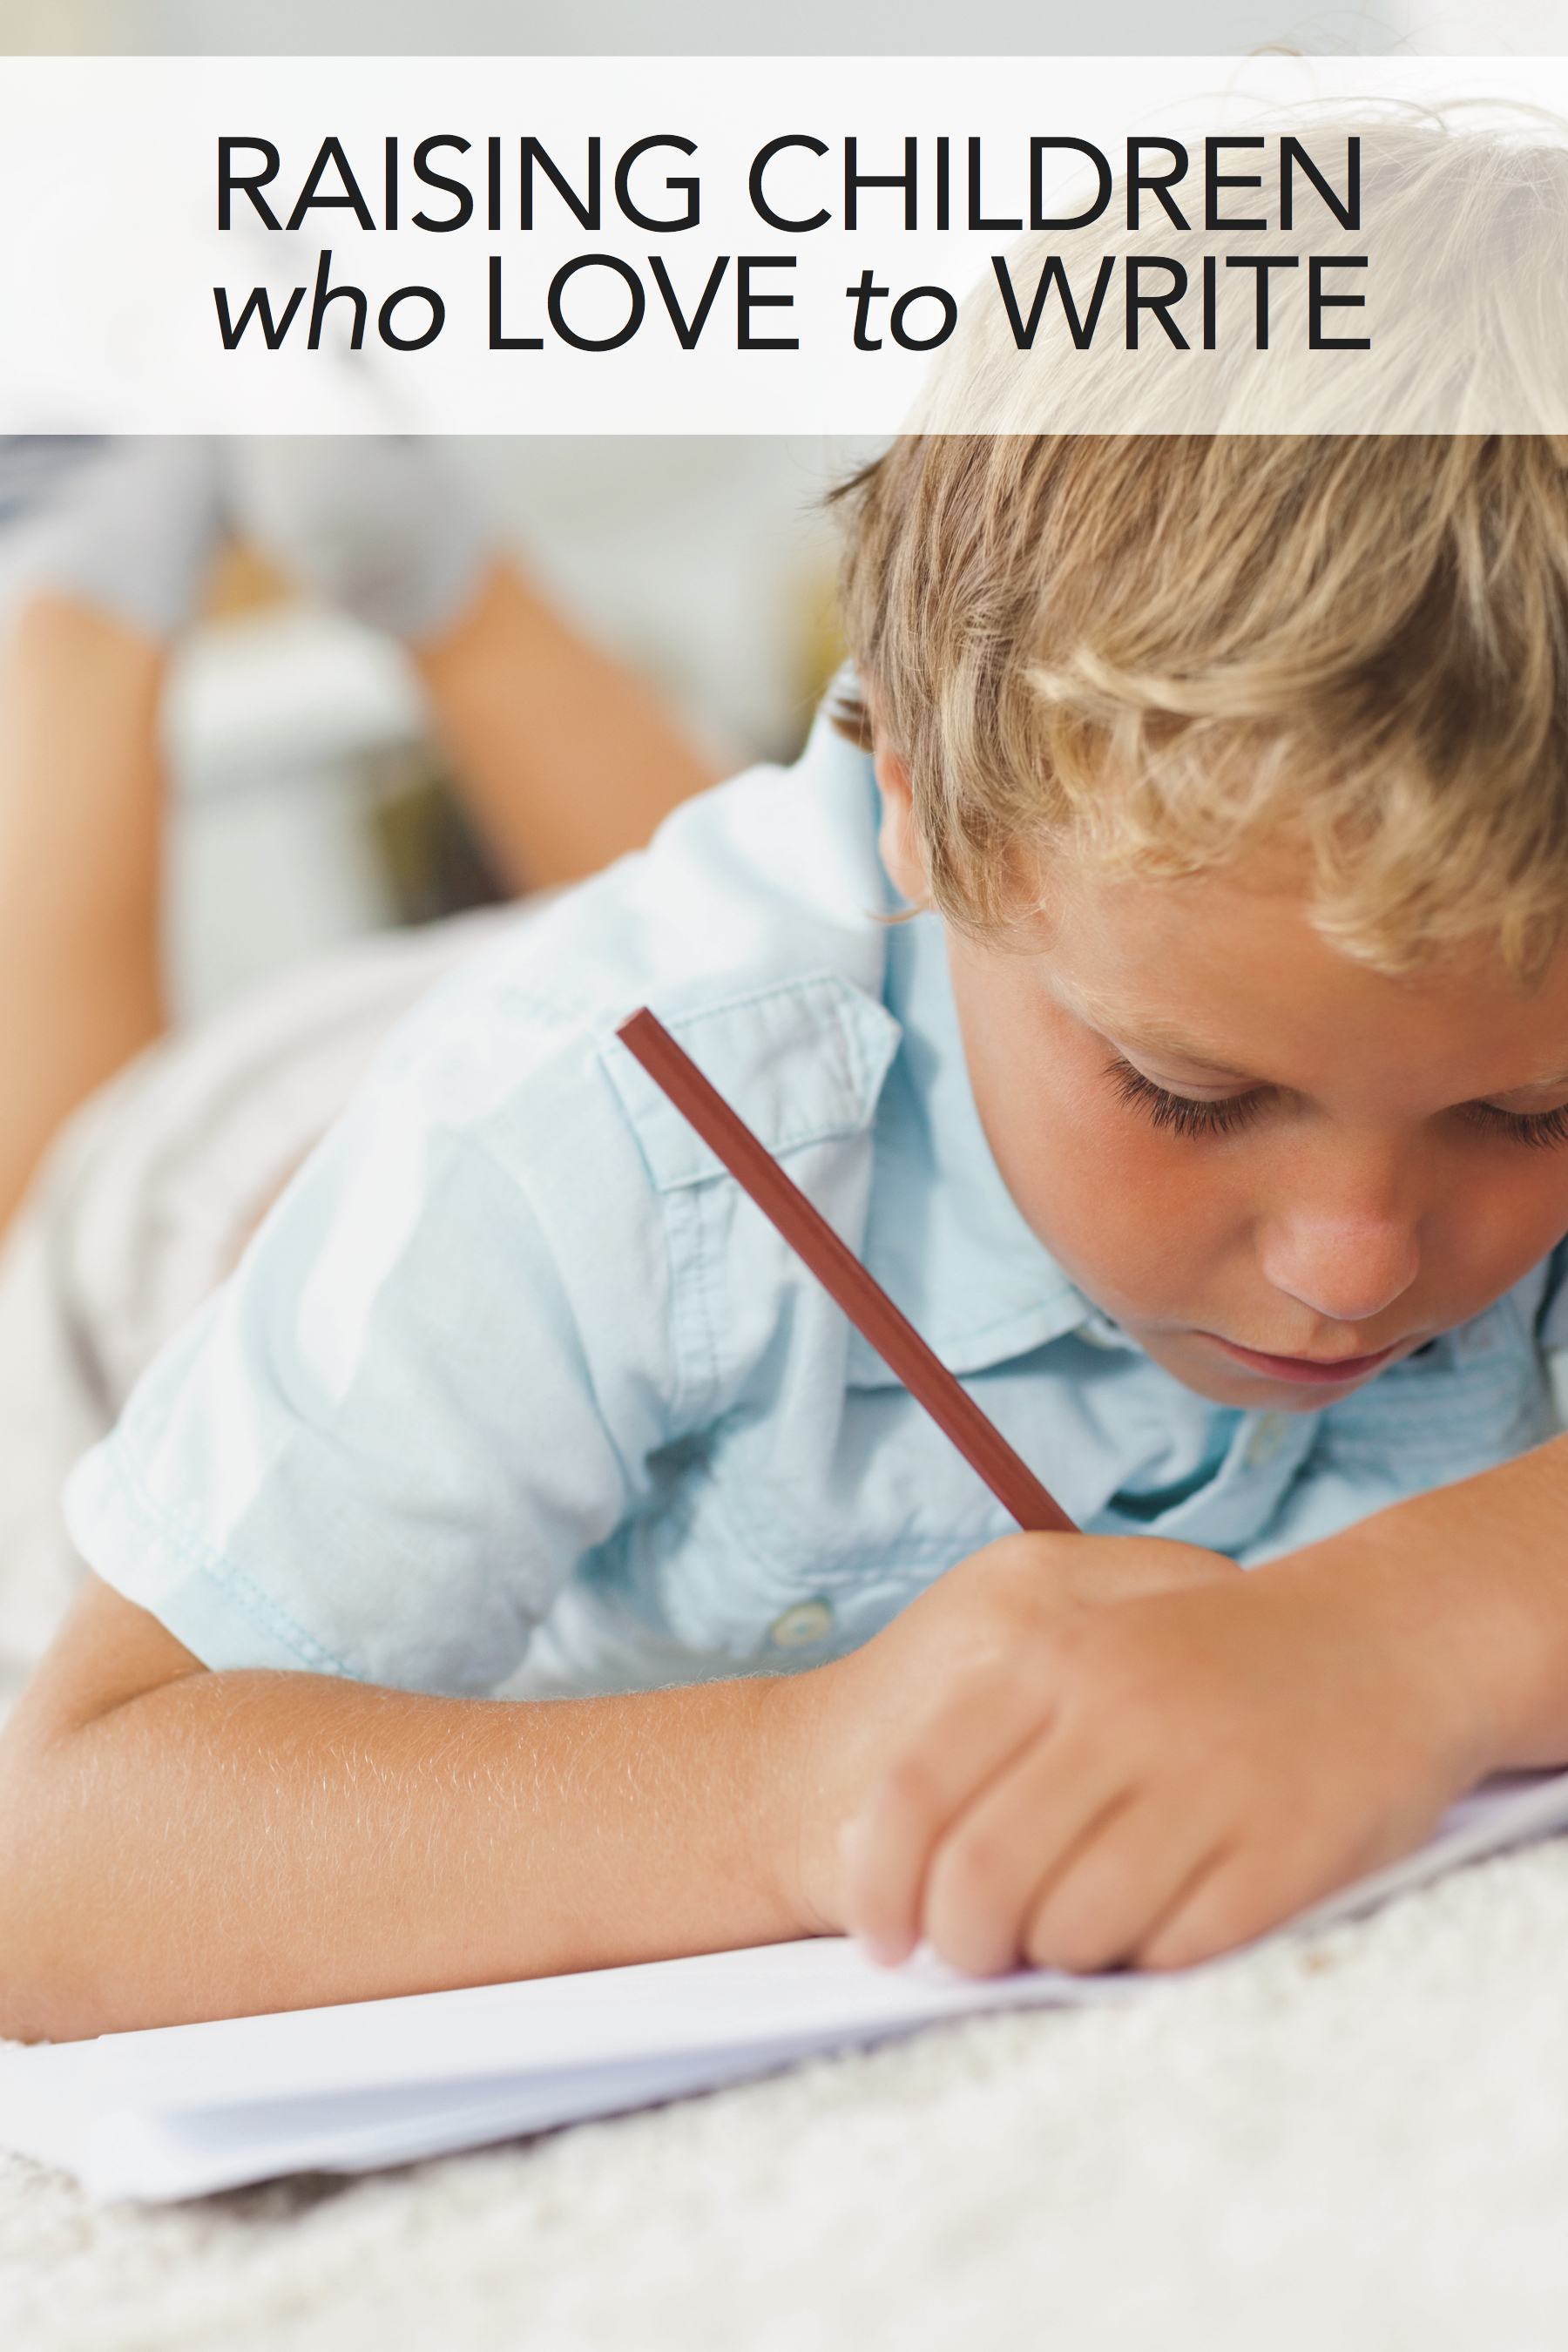 The homeschool parent's guide to raising children who love to write